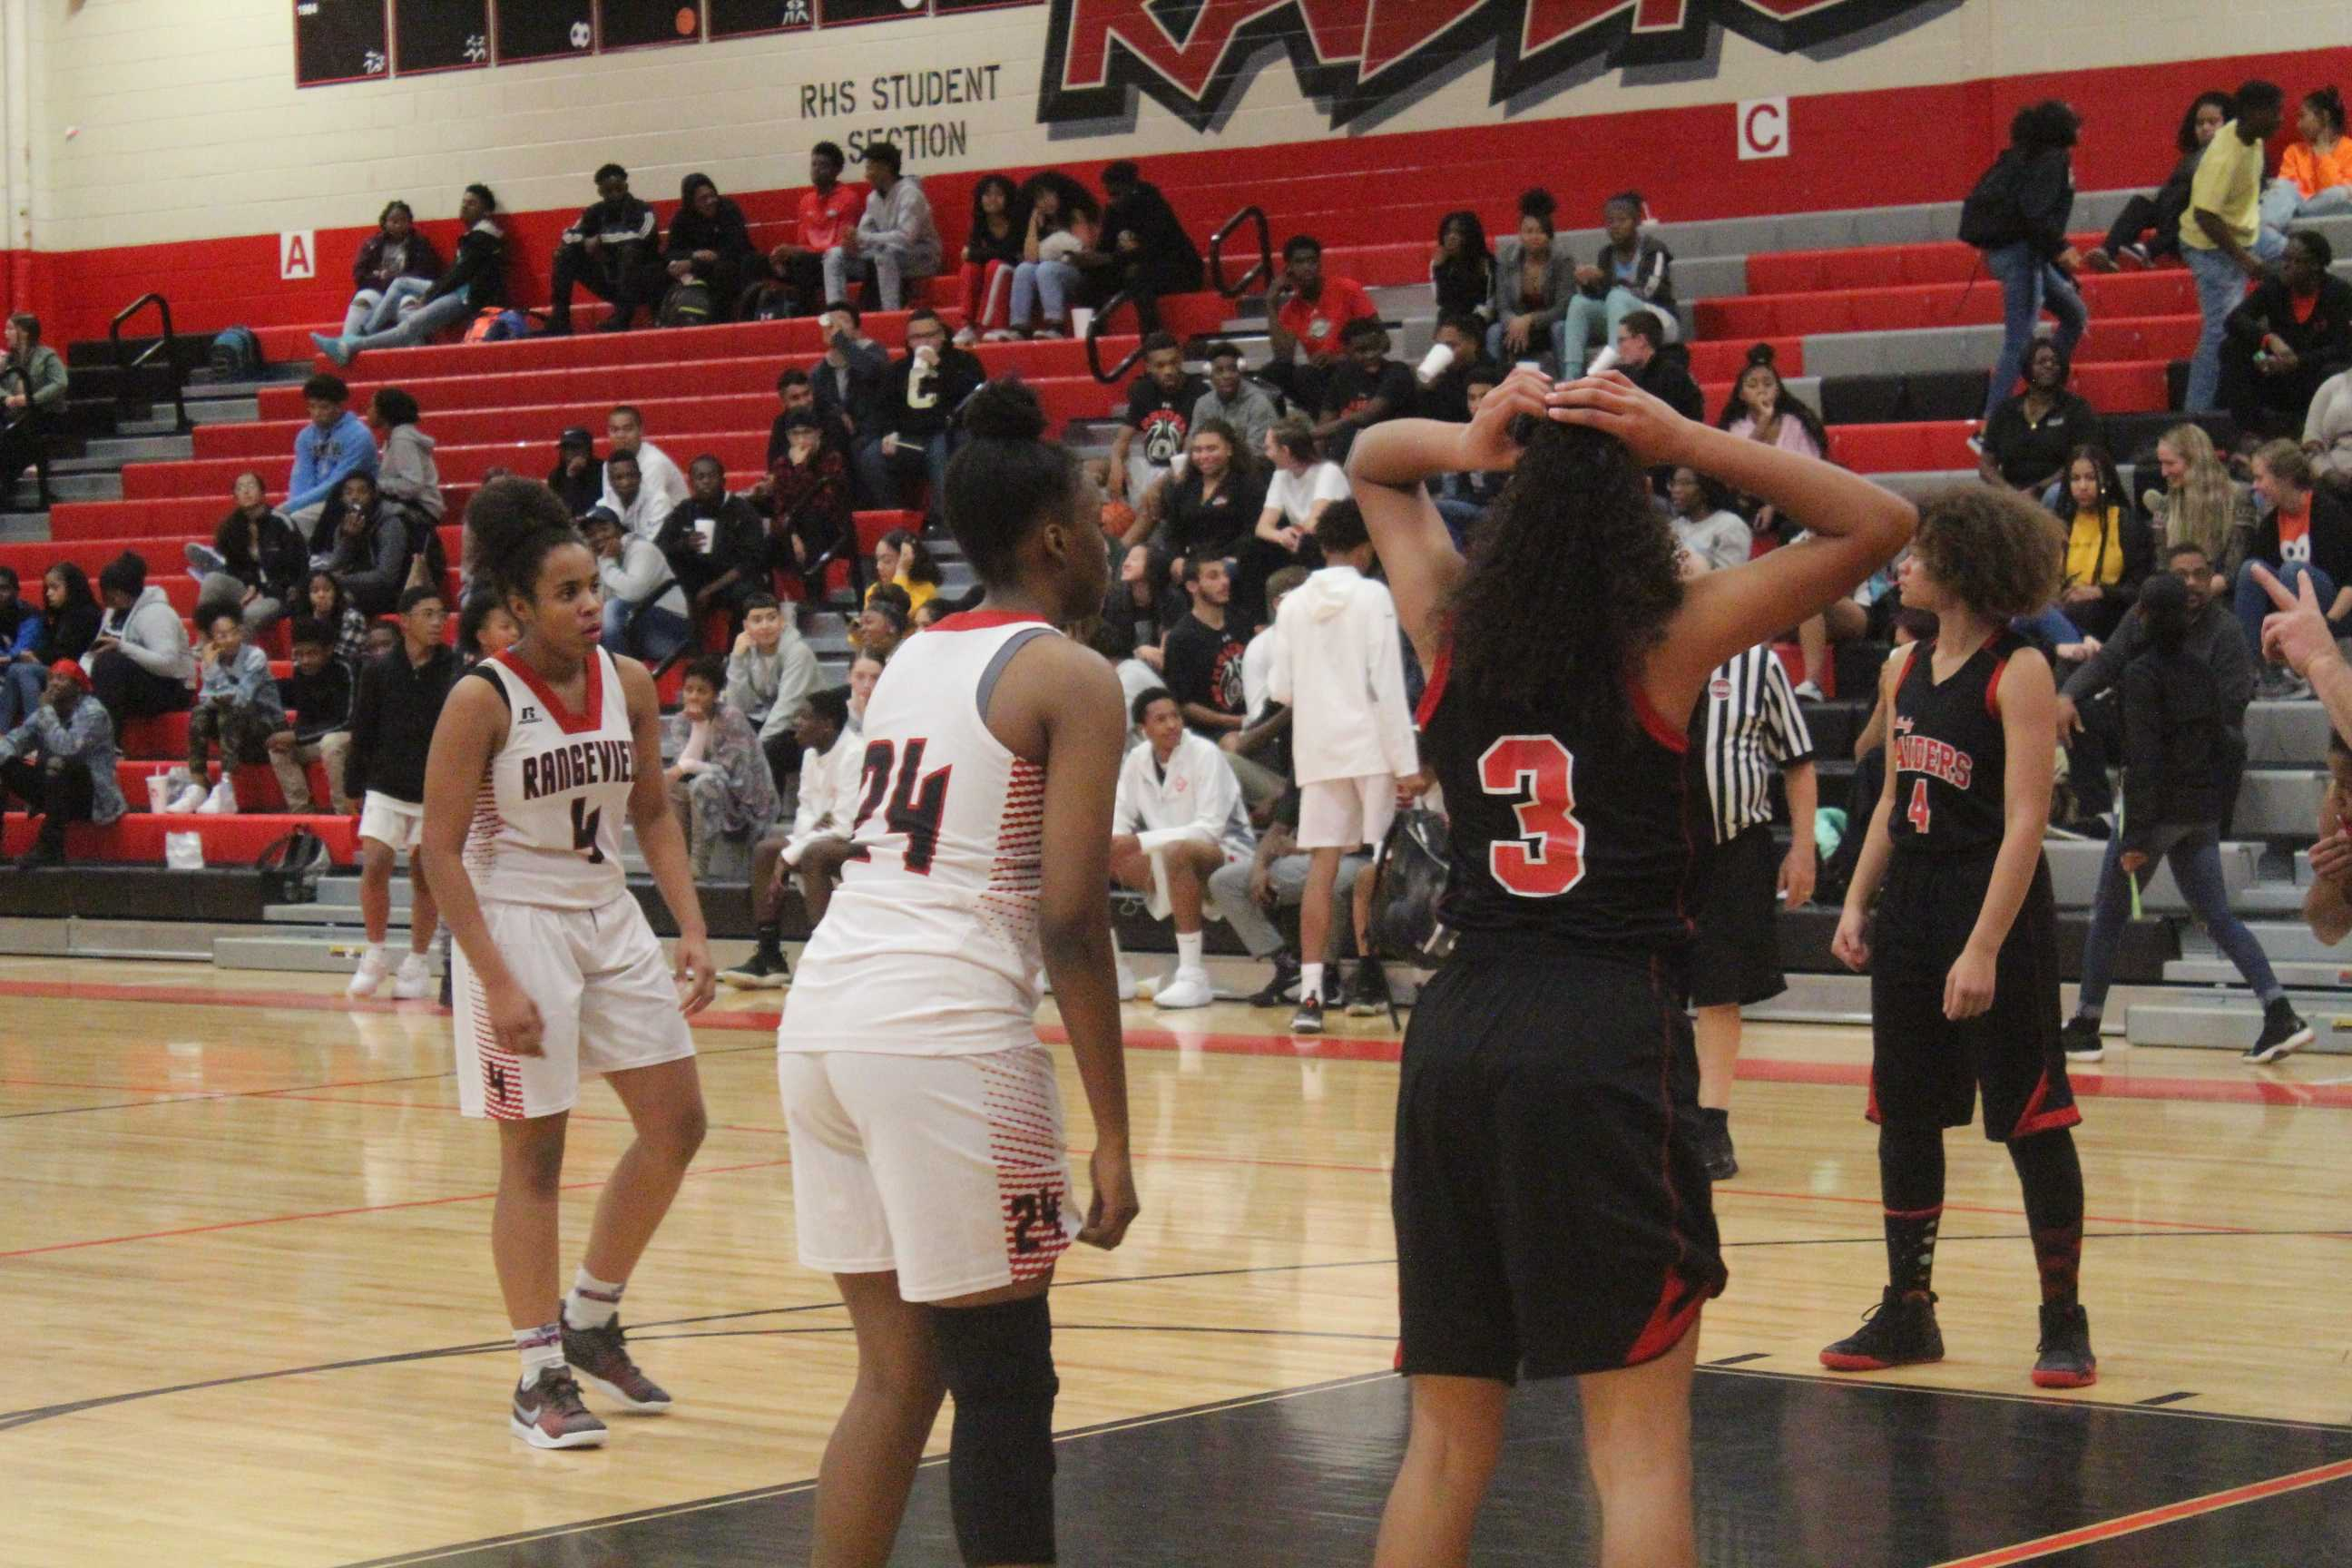 Sports/Opinion: Rangeview's under representation of female athletes